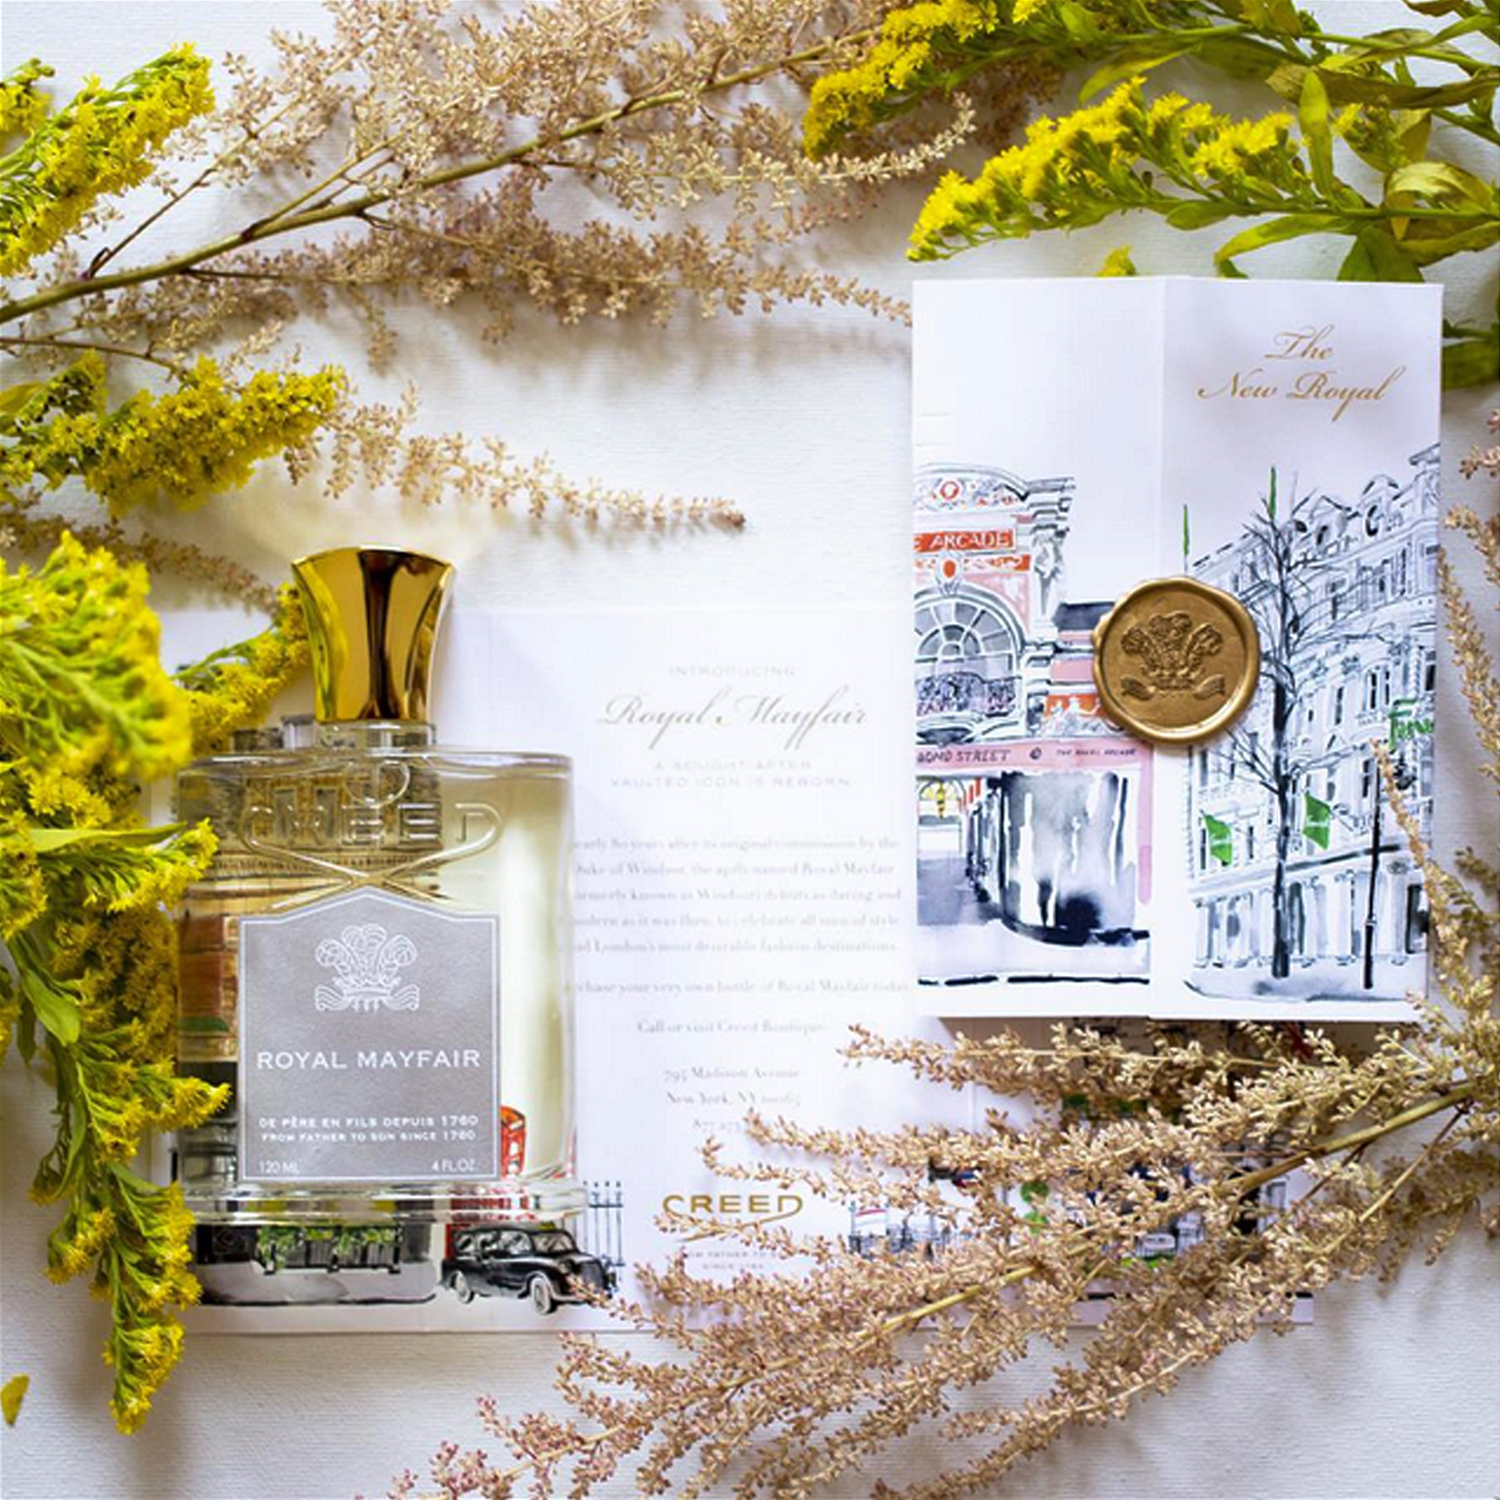 Launch art for Royal Mayfair cologne -used at Creed boutiques,Bergdorf Goodman, packaging and advertising.  AD Lydia Turner